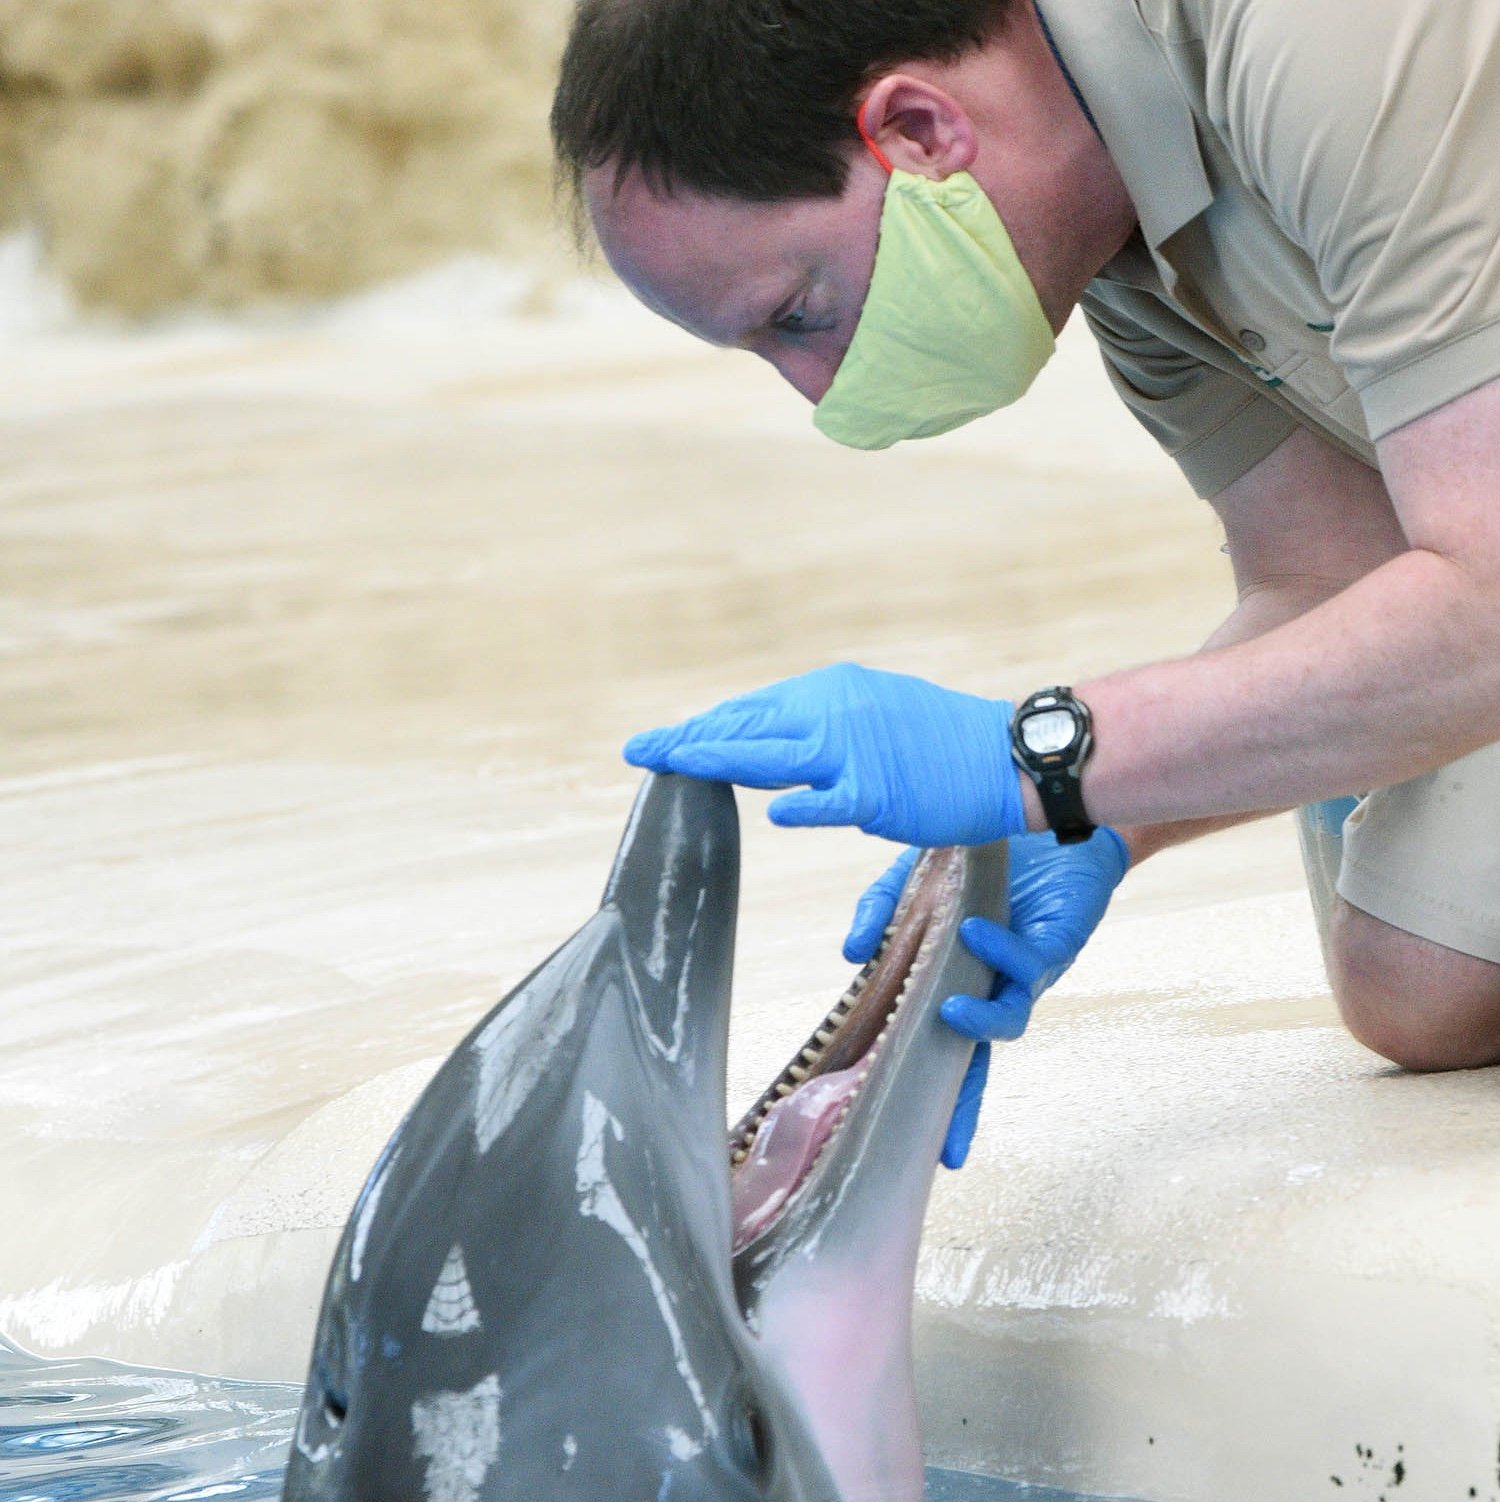 Andy Ferris, a senior animal care specialist, during a husbandry session with one of Brookfield Zoo's bottlenose dolphins. (Jim Schulz / Chicago Zoological Society)